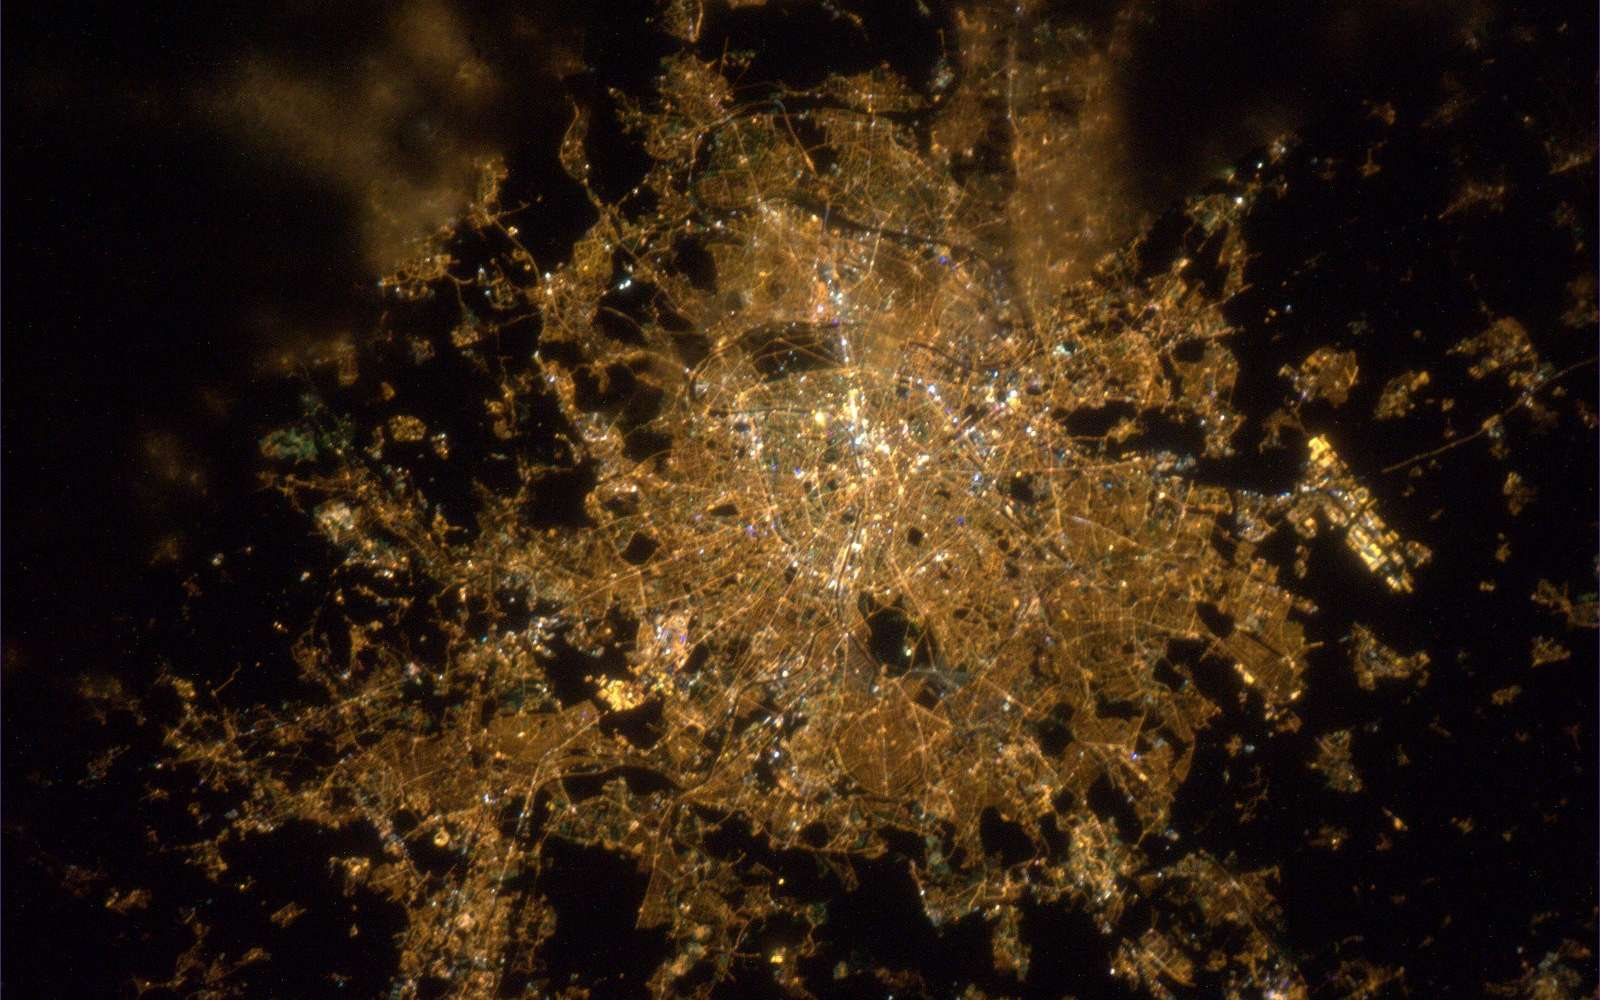 Paris by night. © Esa/Nasa